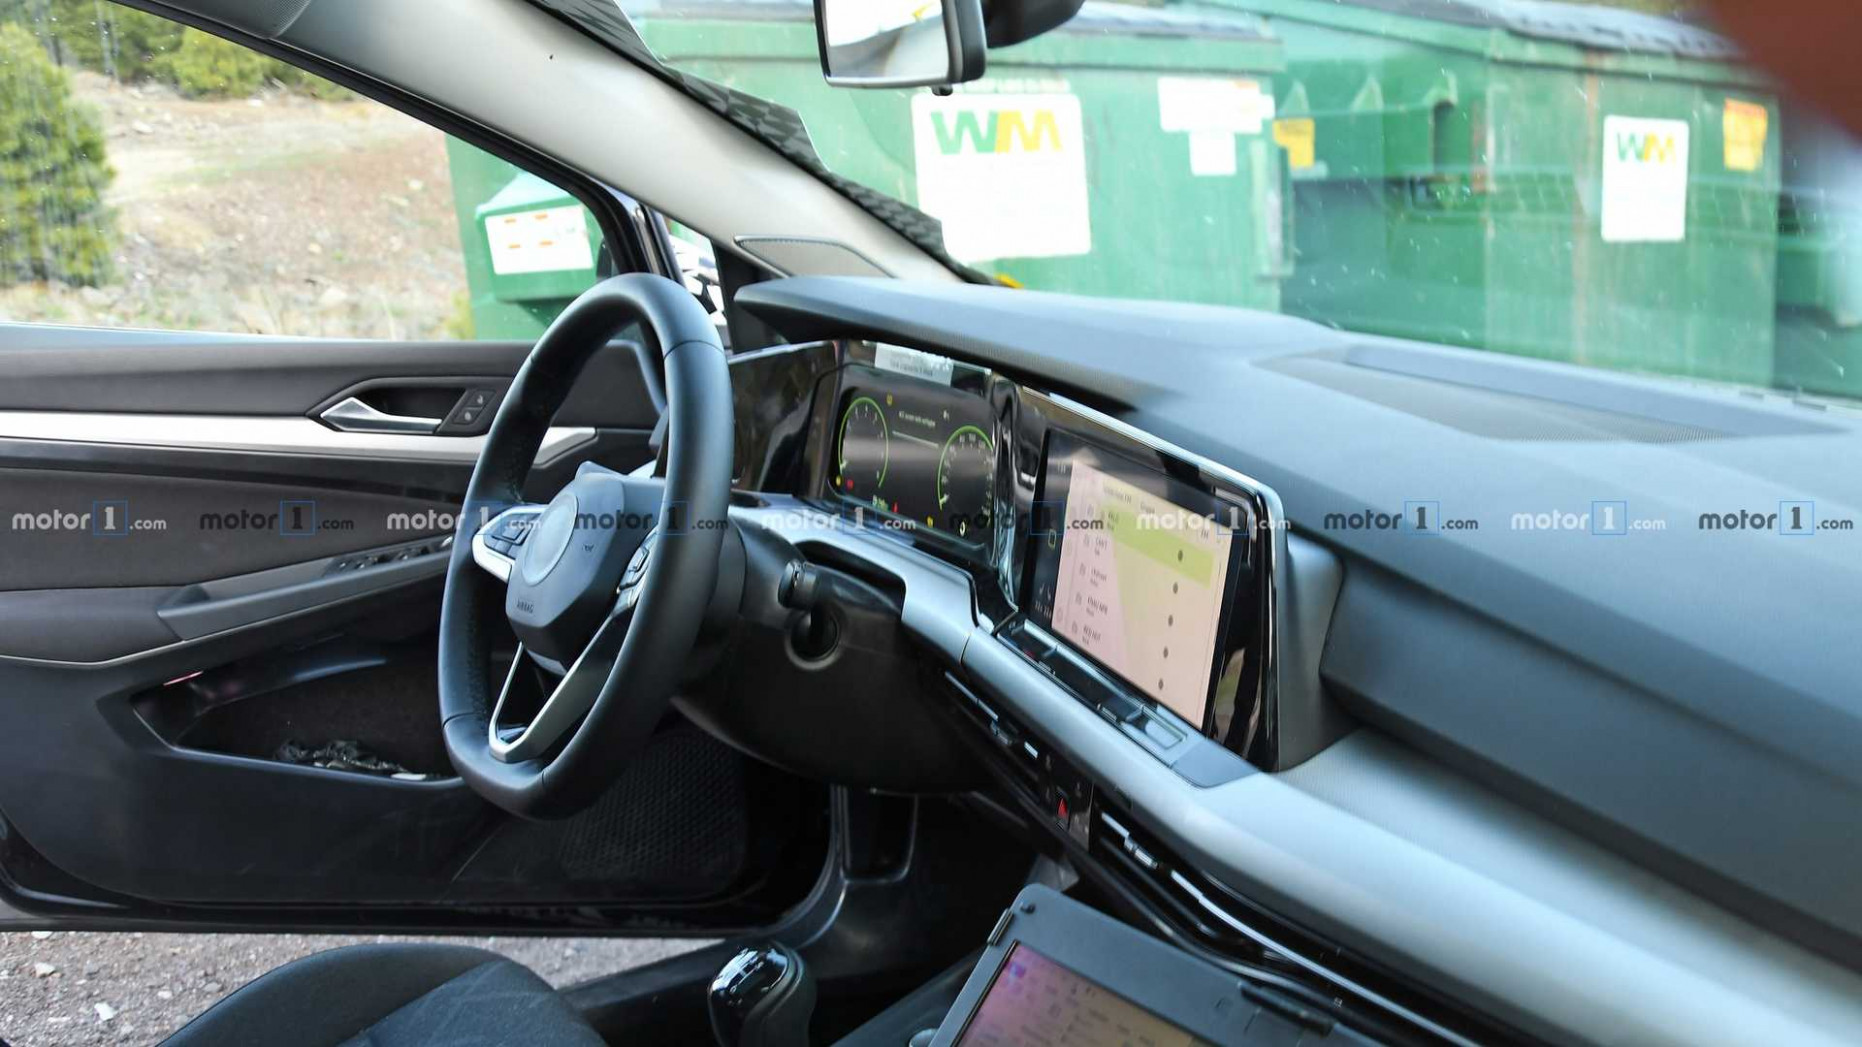 11 VW Golf Interior Spied For The First Time - 2020 volkswagen interior